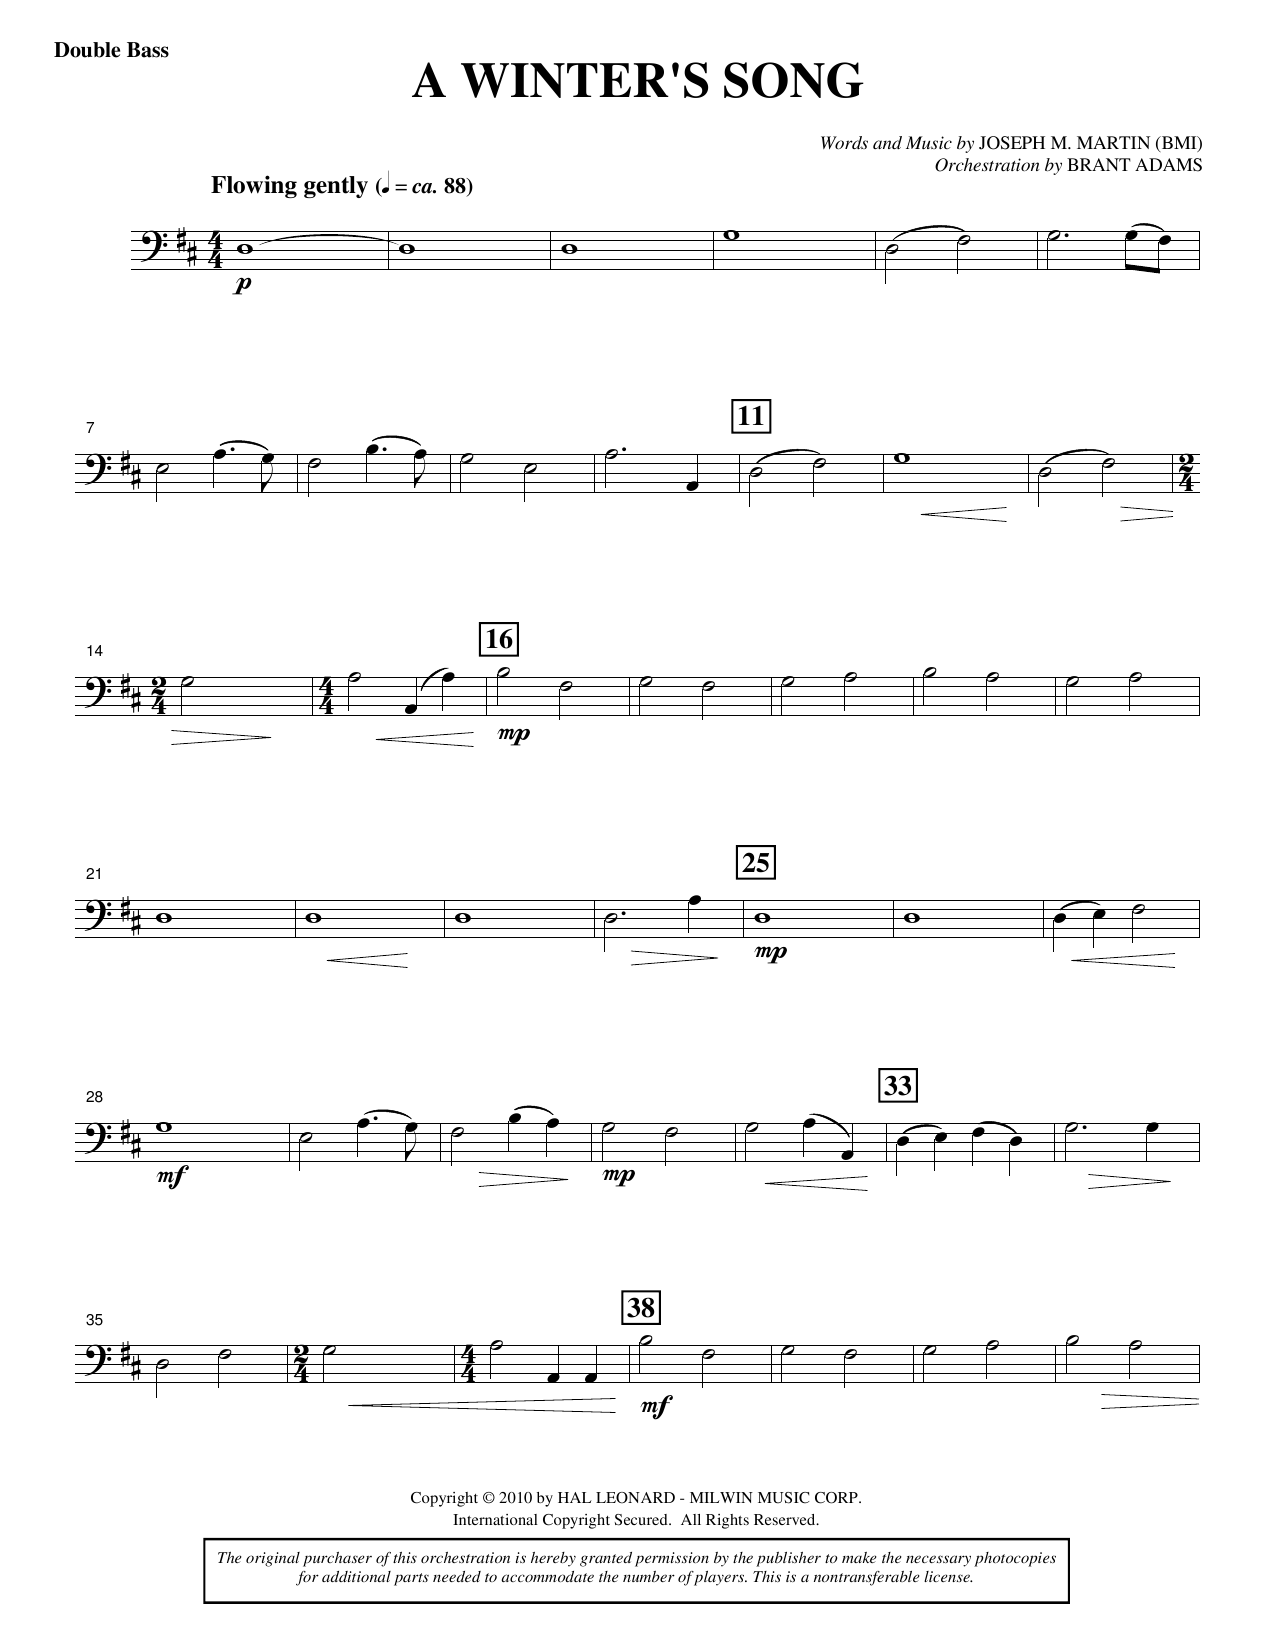 Joseph M. Martin A Winter's Song (from Winter's Grace) - Double Bass sheet music notes printable PDF score